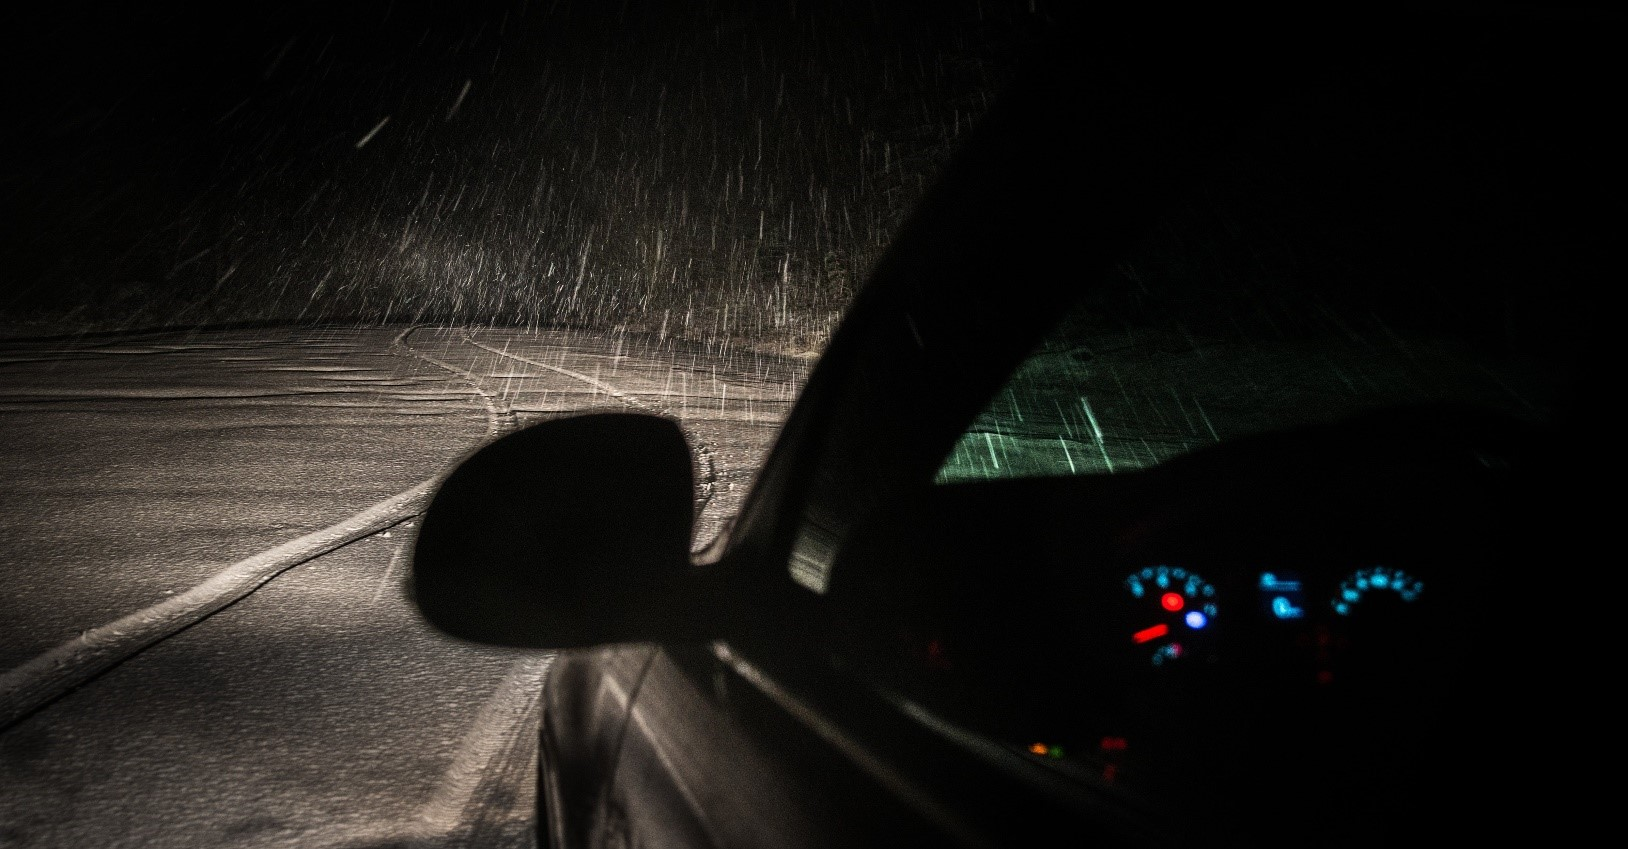 Winter Driving: How to Stay Safe on the Road